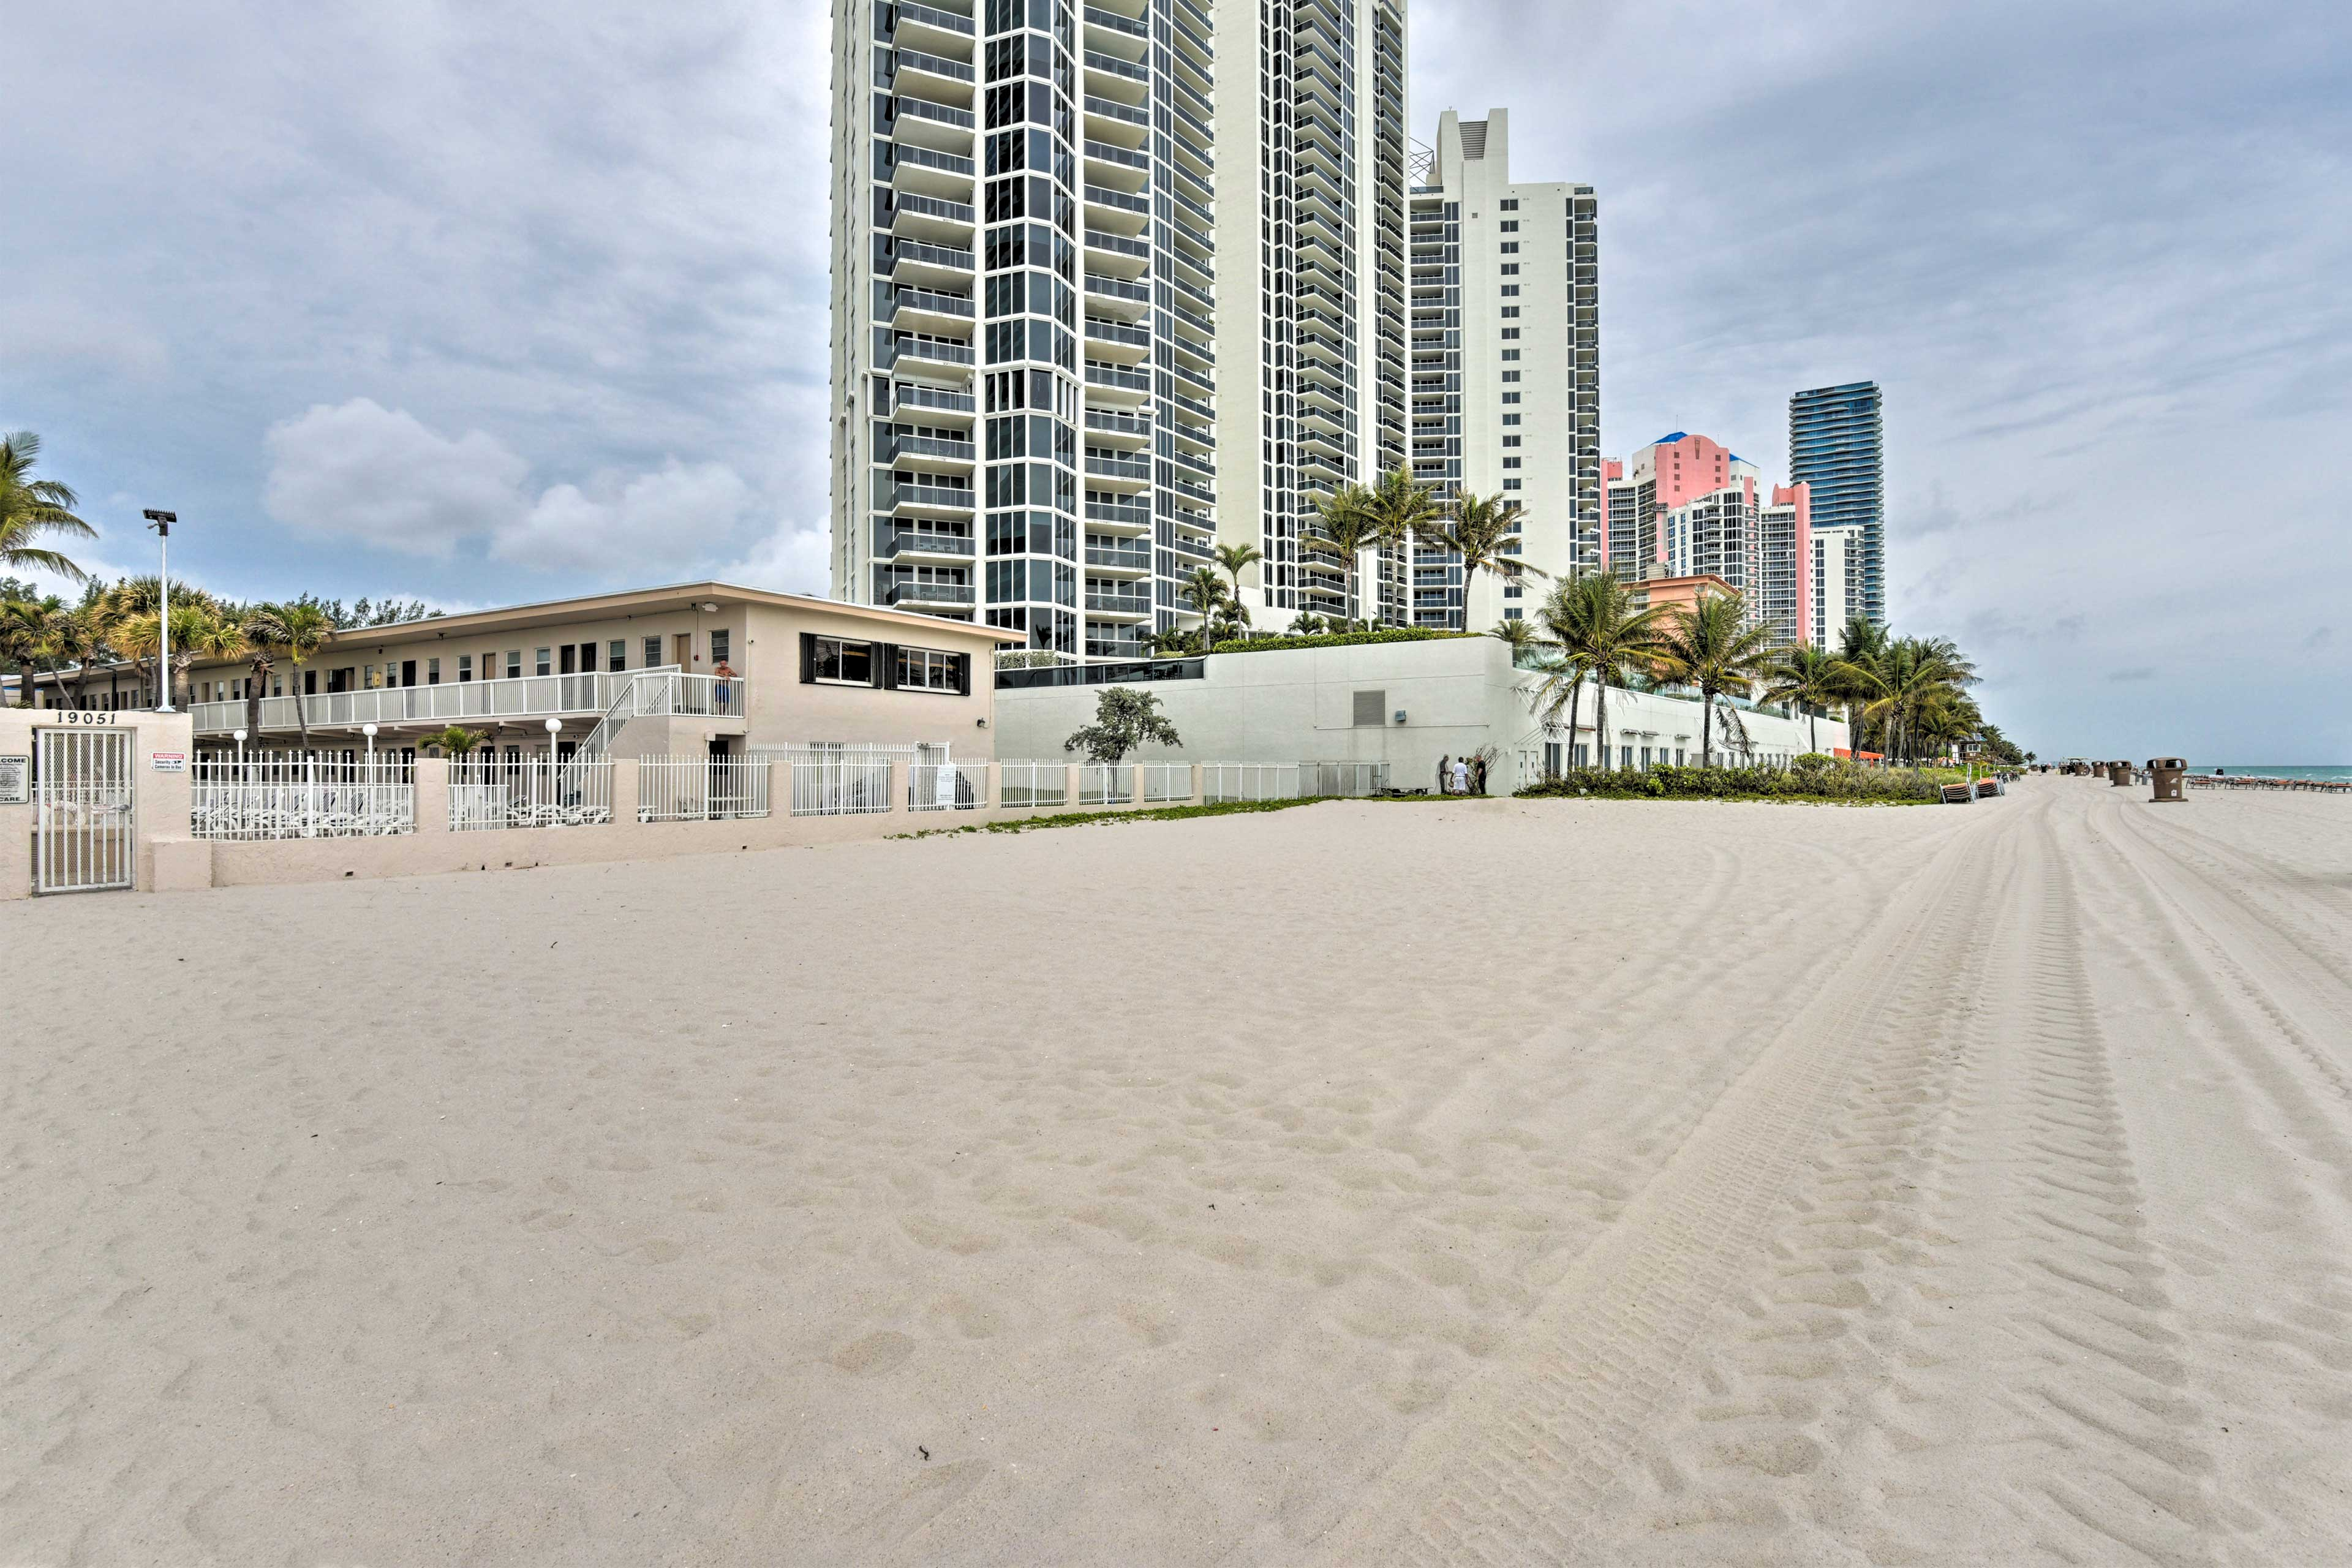 The Miami Beach Club offers a private beach area and an oceanfront pool.